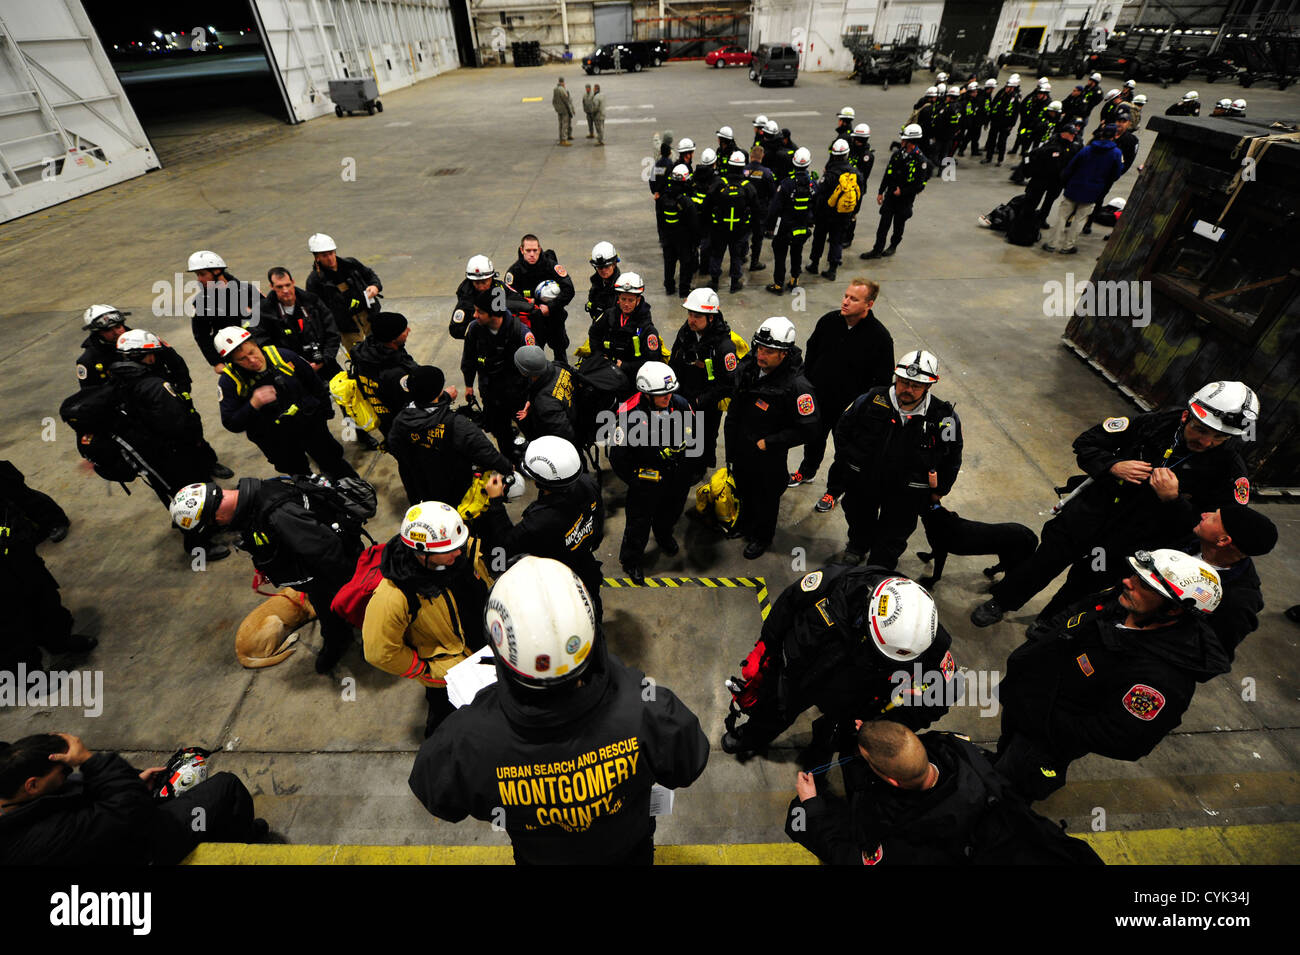 JOINT BASE MCGUIRE-DIX-LAKEHURST, N.J. – Members of the National Urban Search and Rescue Task Force receive a briefing Stock Photo